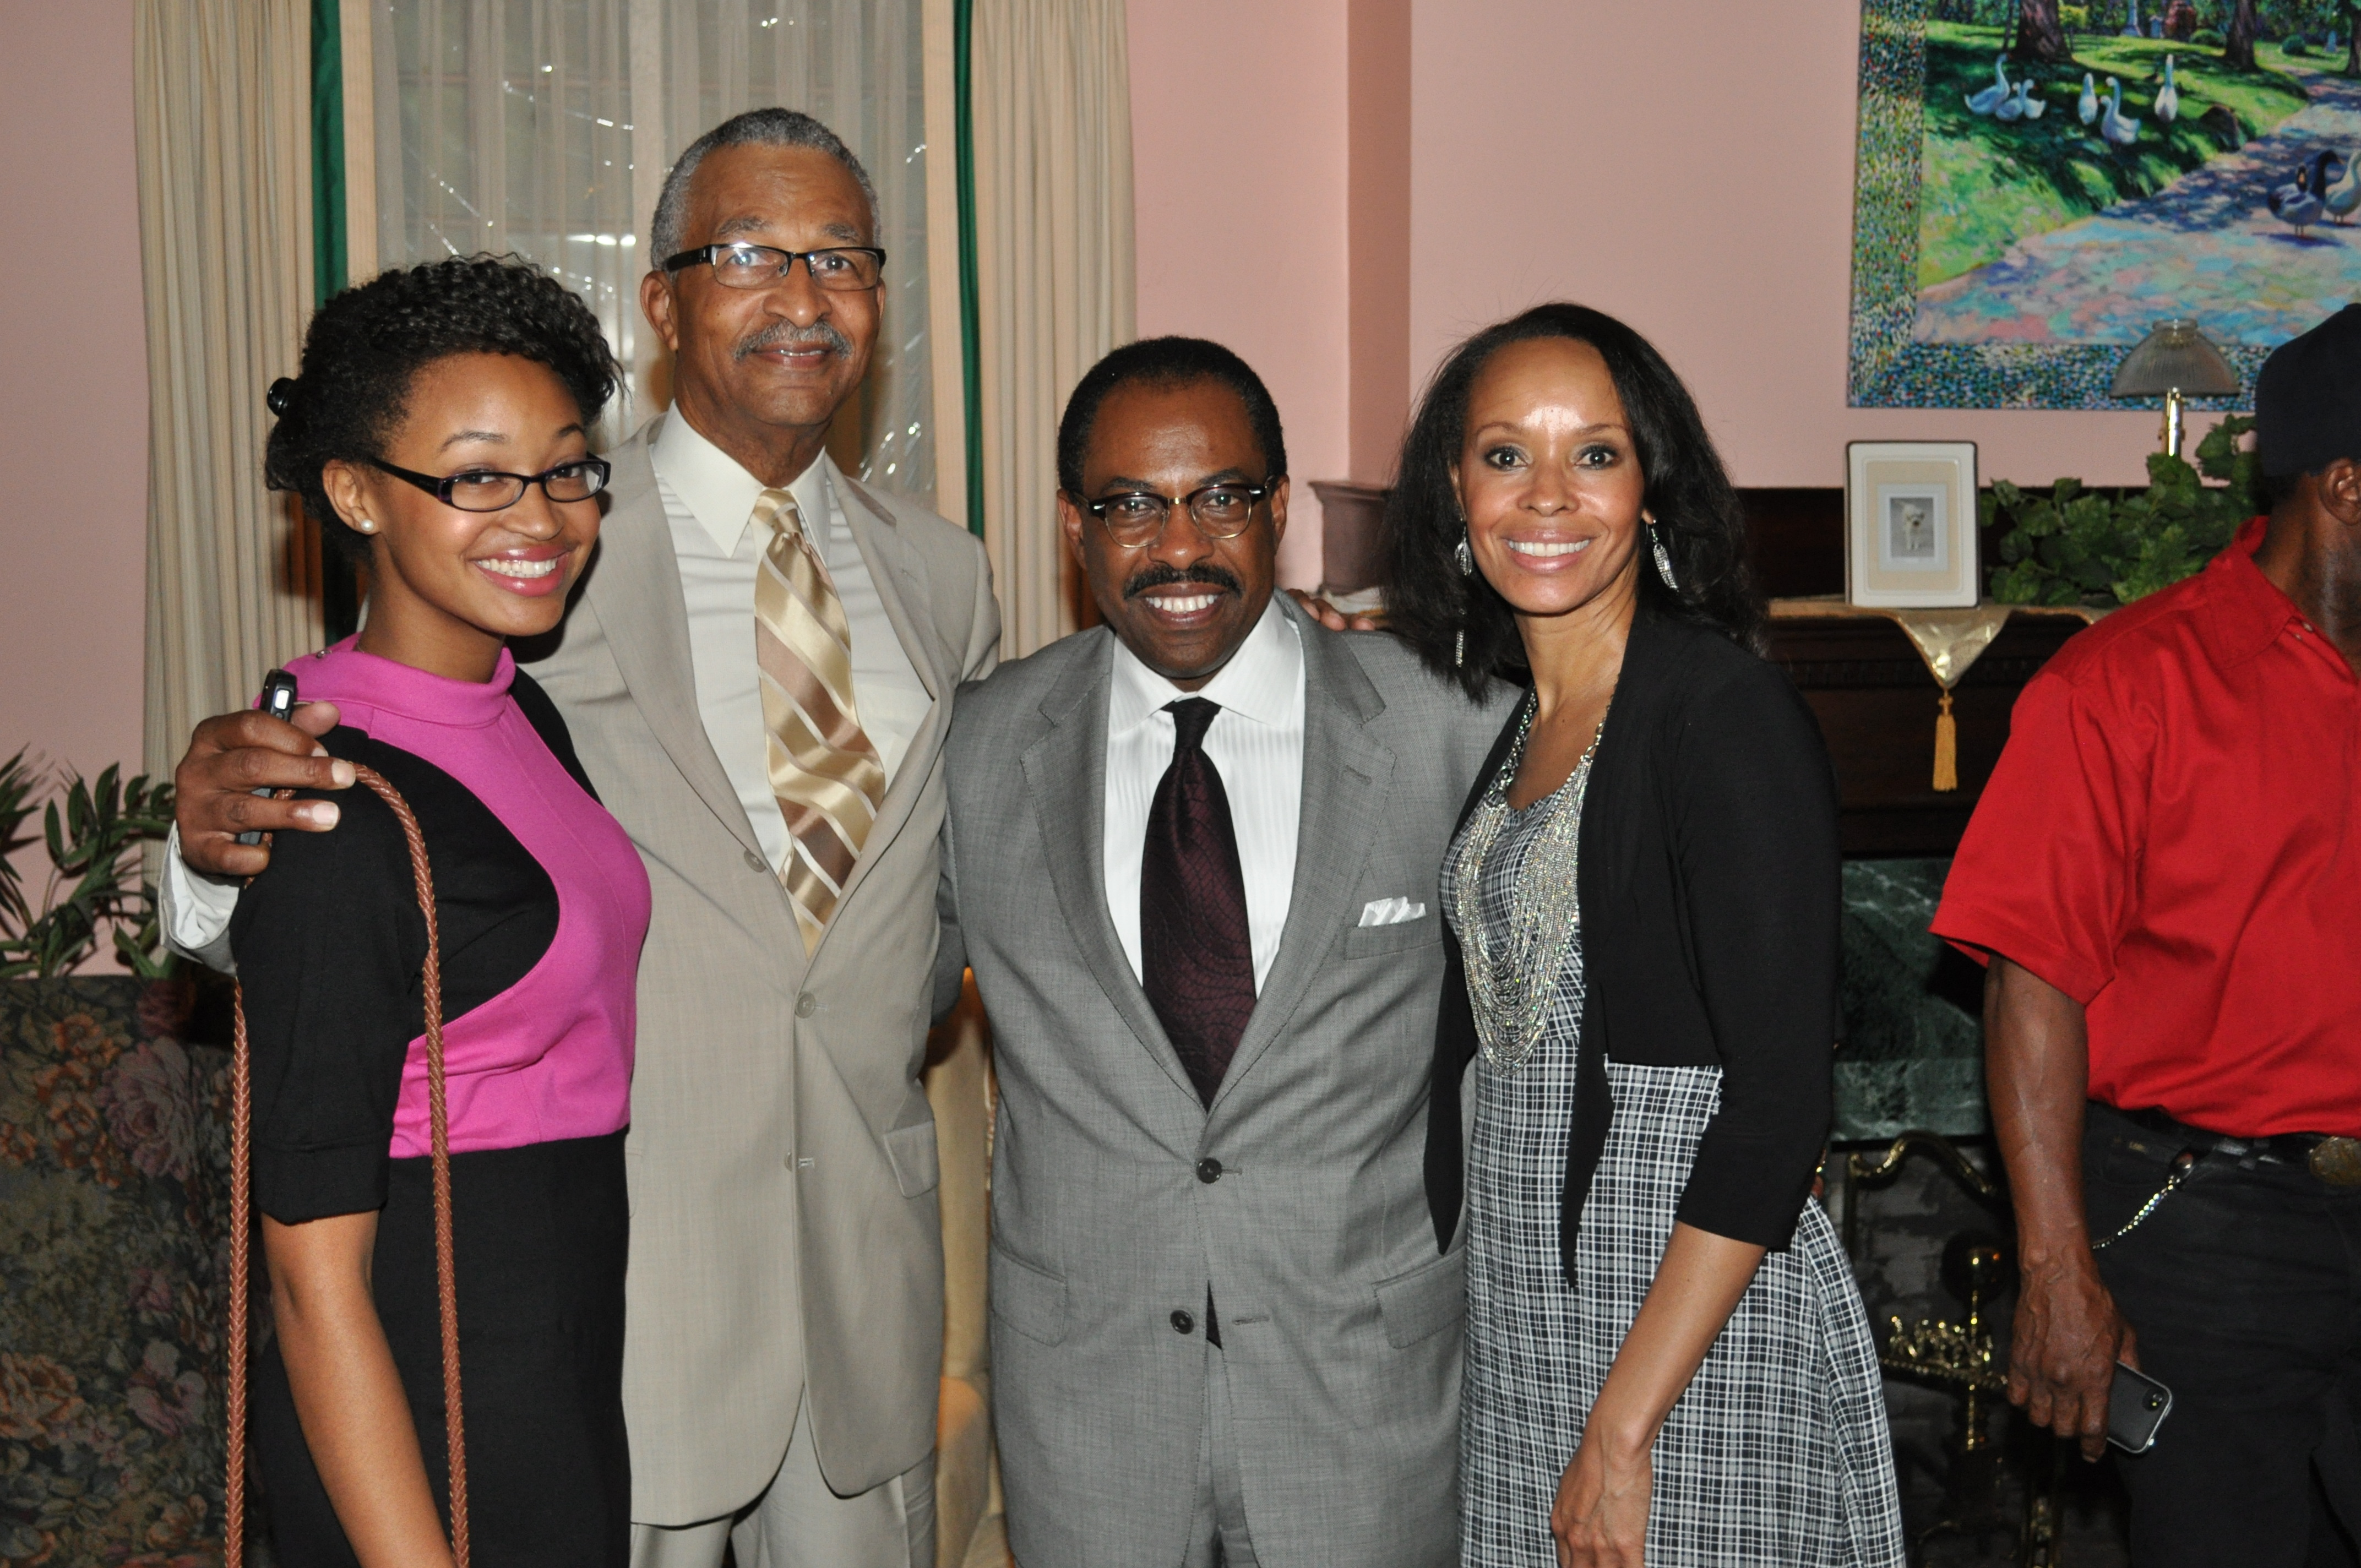 omar-neal-and-family